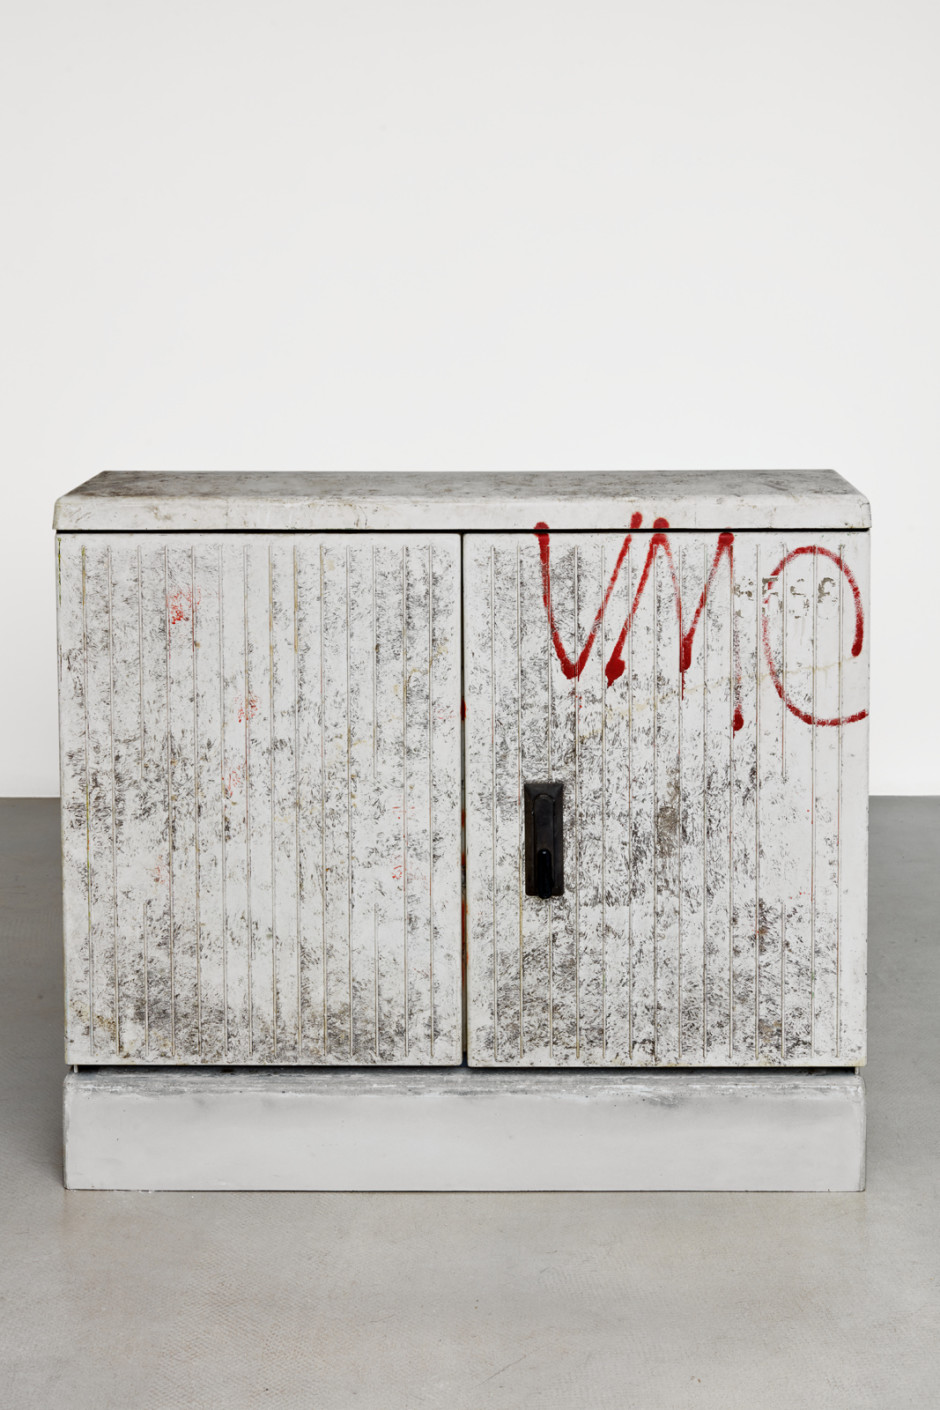 Klara Liden  VMC, 2020  junction box, concrete  103 x 111 x 35.6 cm / 40 ½ x 43 ¾ x 14 ⅛ in